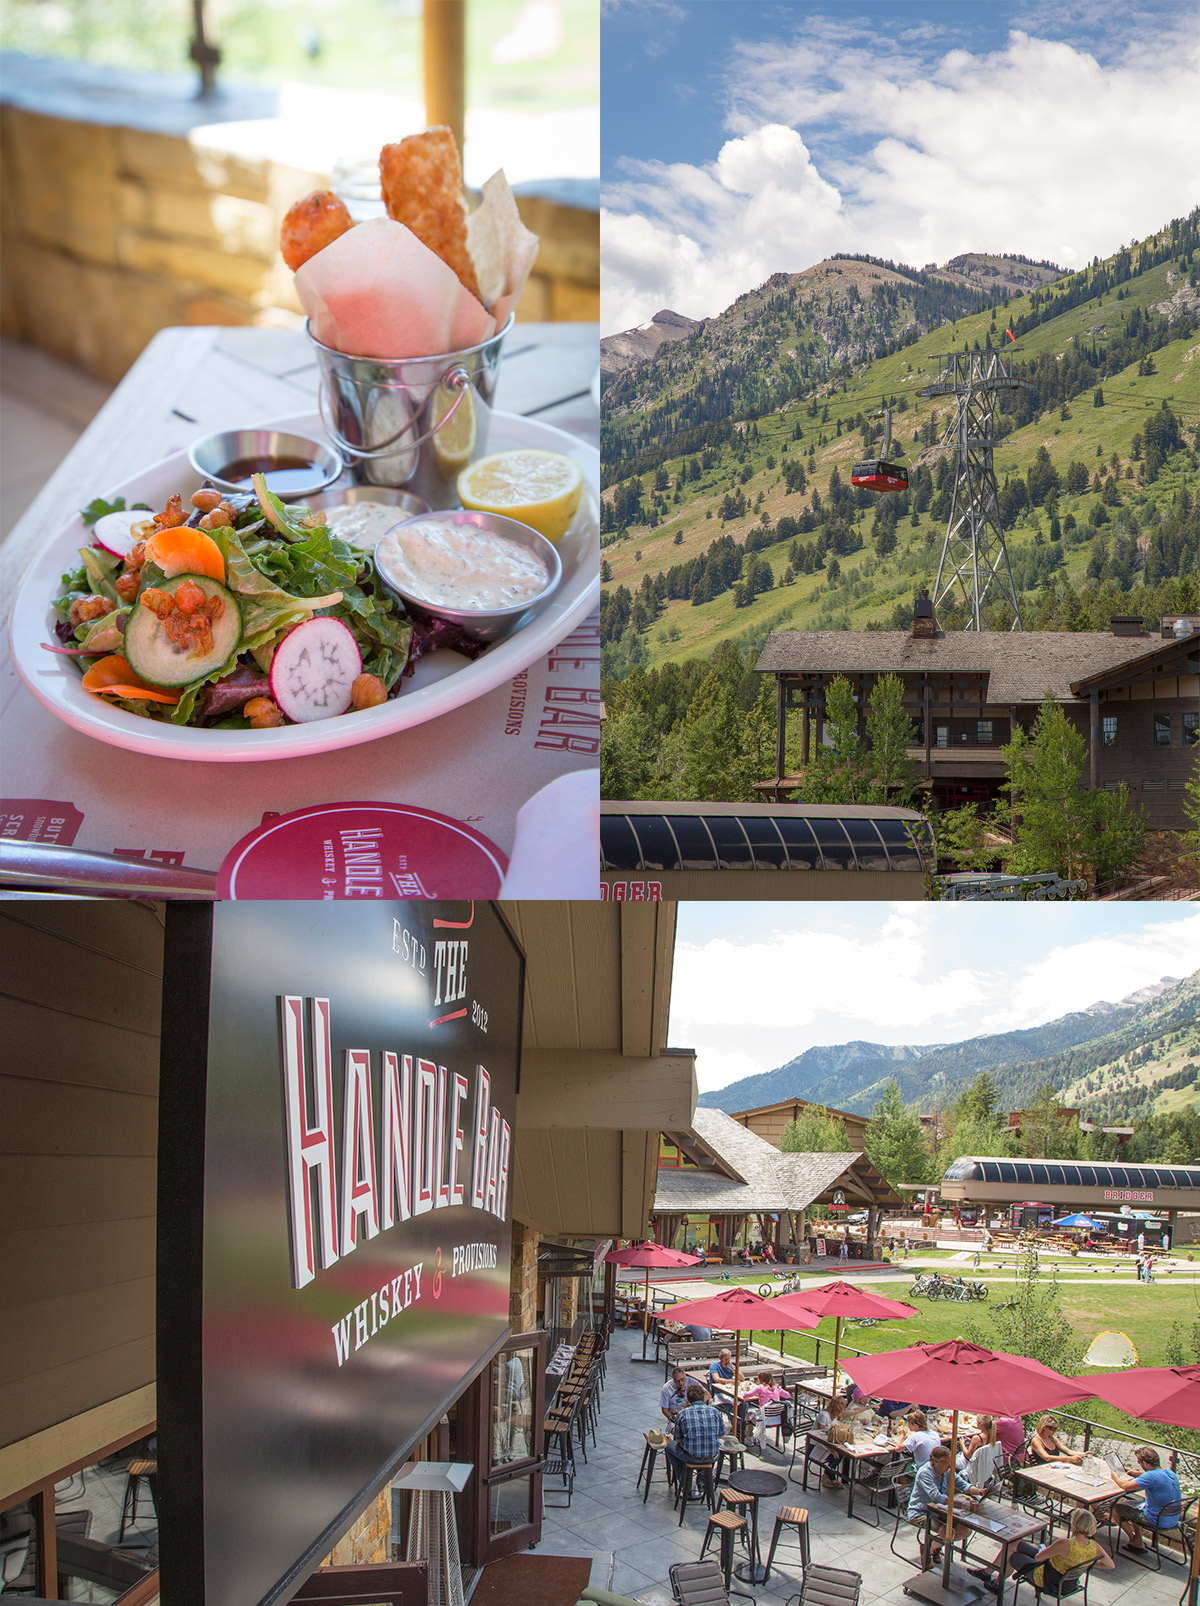 The Four Seasons Resort in Jackson Hole, Wyoming and the Handle Bar Restaurant right